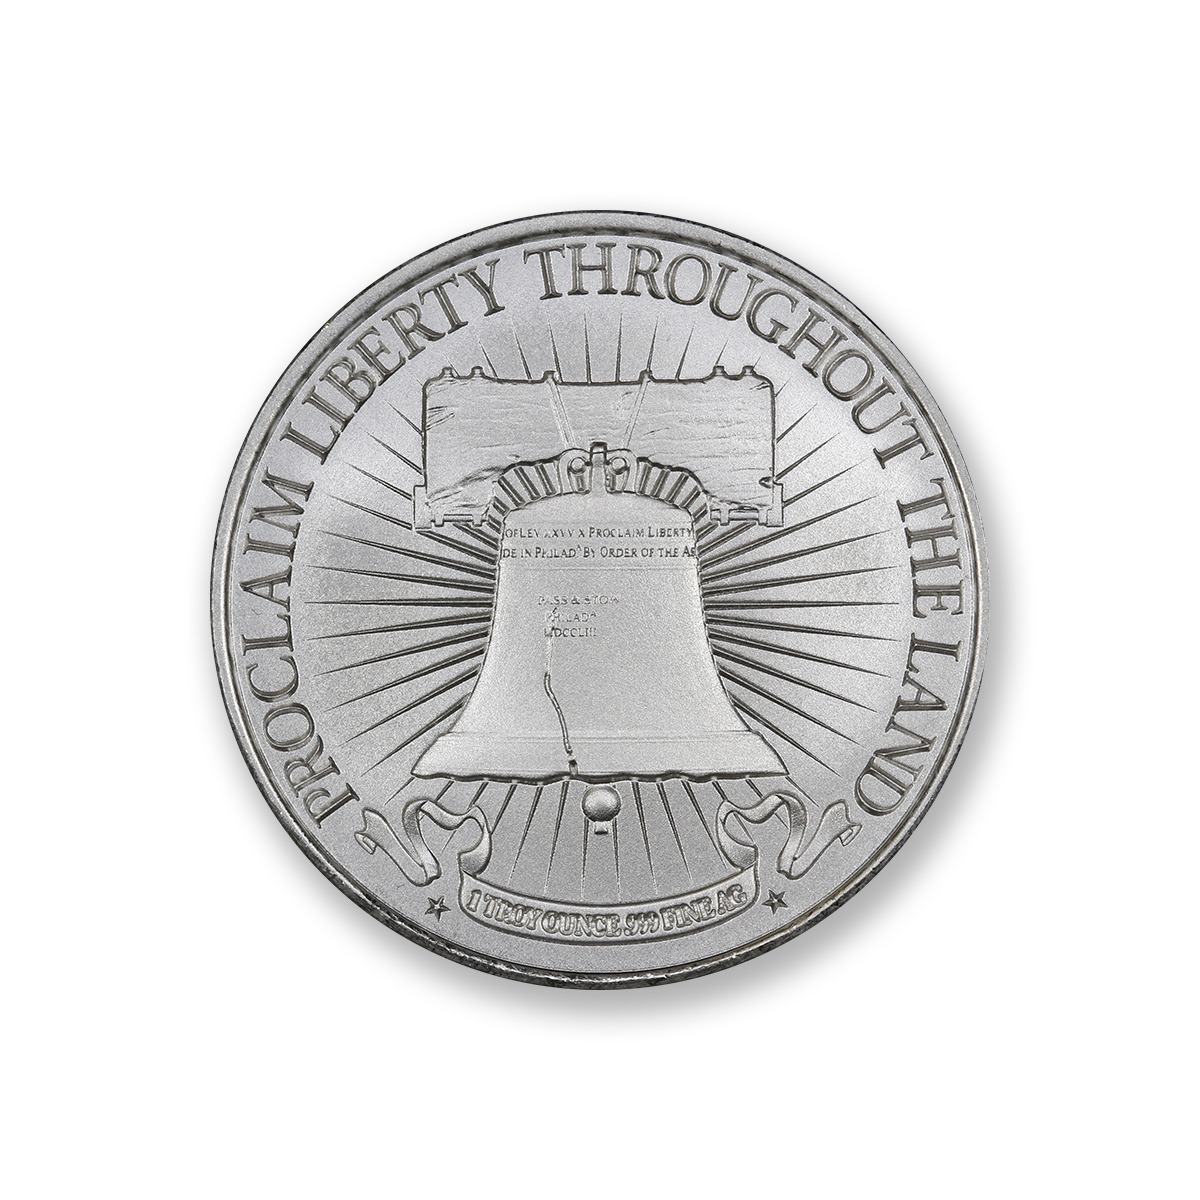 SONS OF LIBERTY, TYPE II W/ LIBERTY BELL – 1 TROY OUNCE – 39MM (ONLY 500 MINTED!)